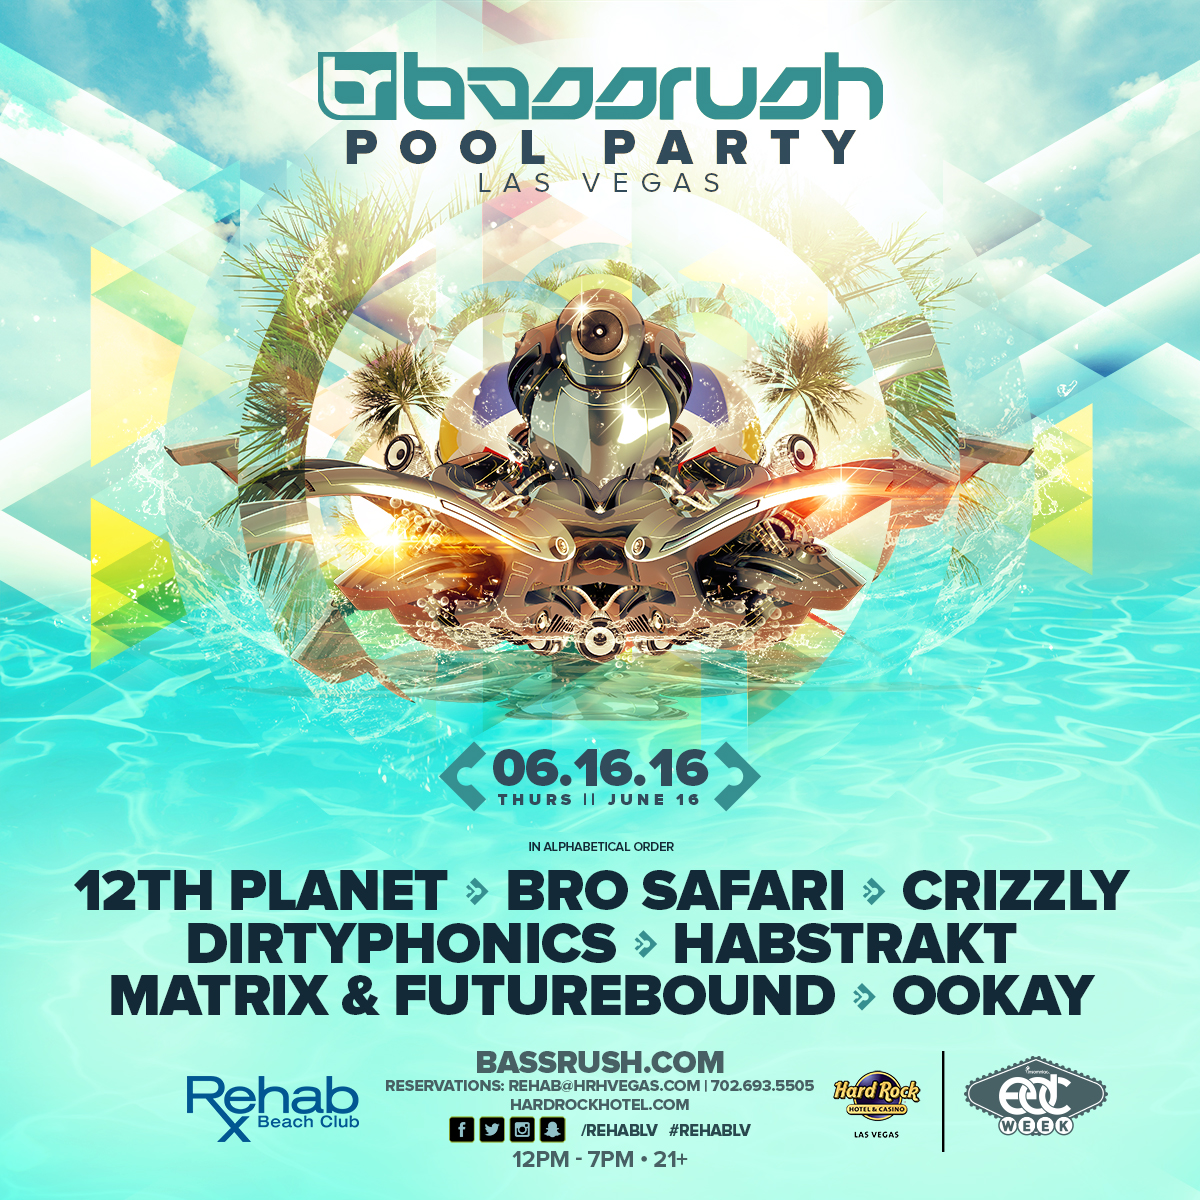 Bassrush pool party las vegas bassrush for Pool show las vegas 2016